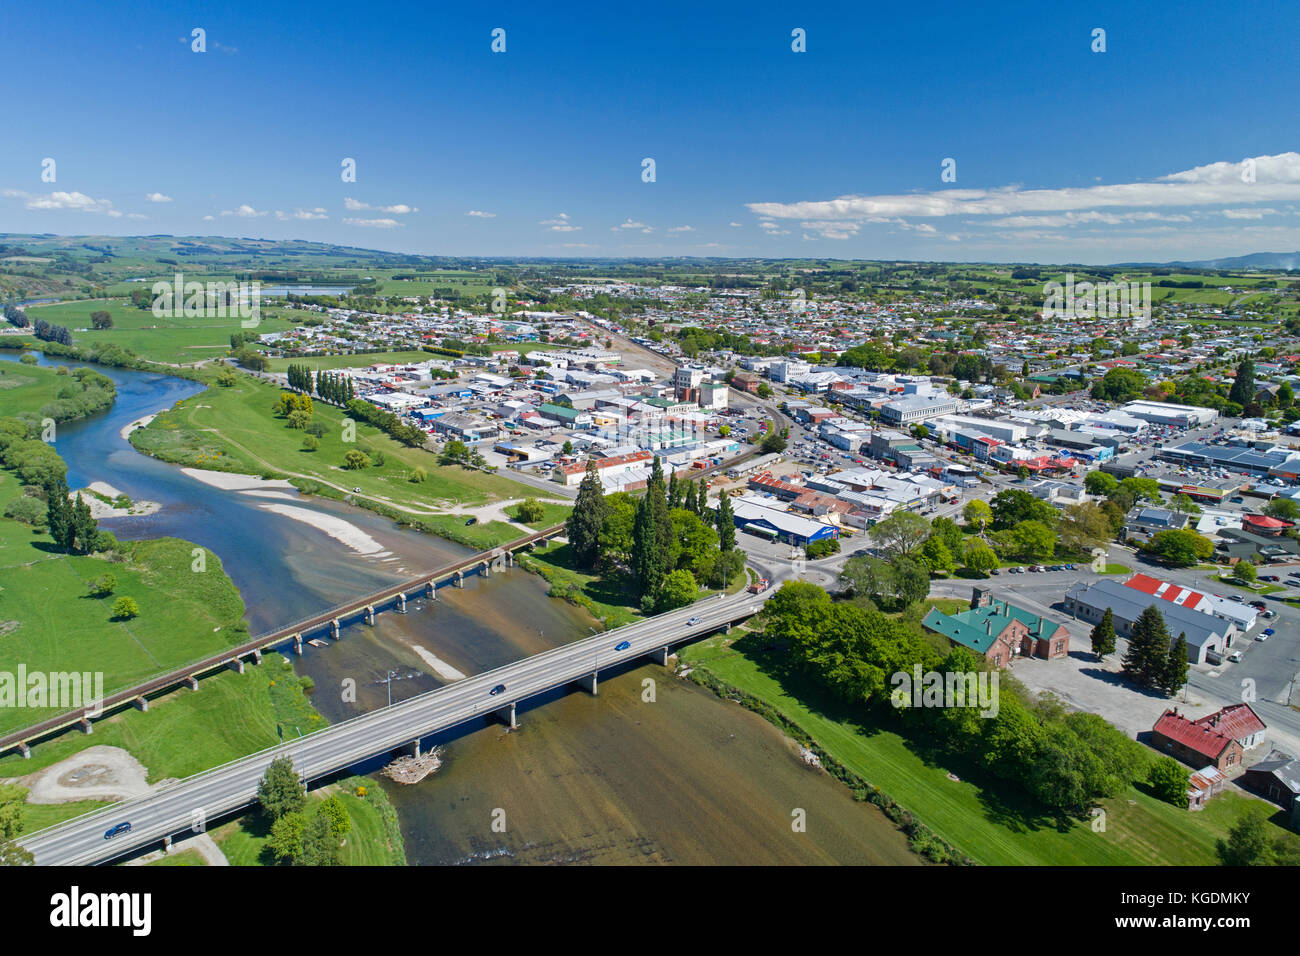 Bridges over Mataura River, Gore, Southland, South Island, New Zealand - drone aerial - Stock Image